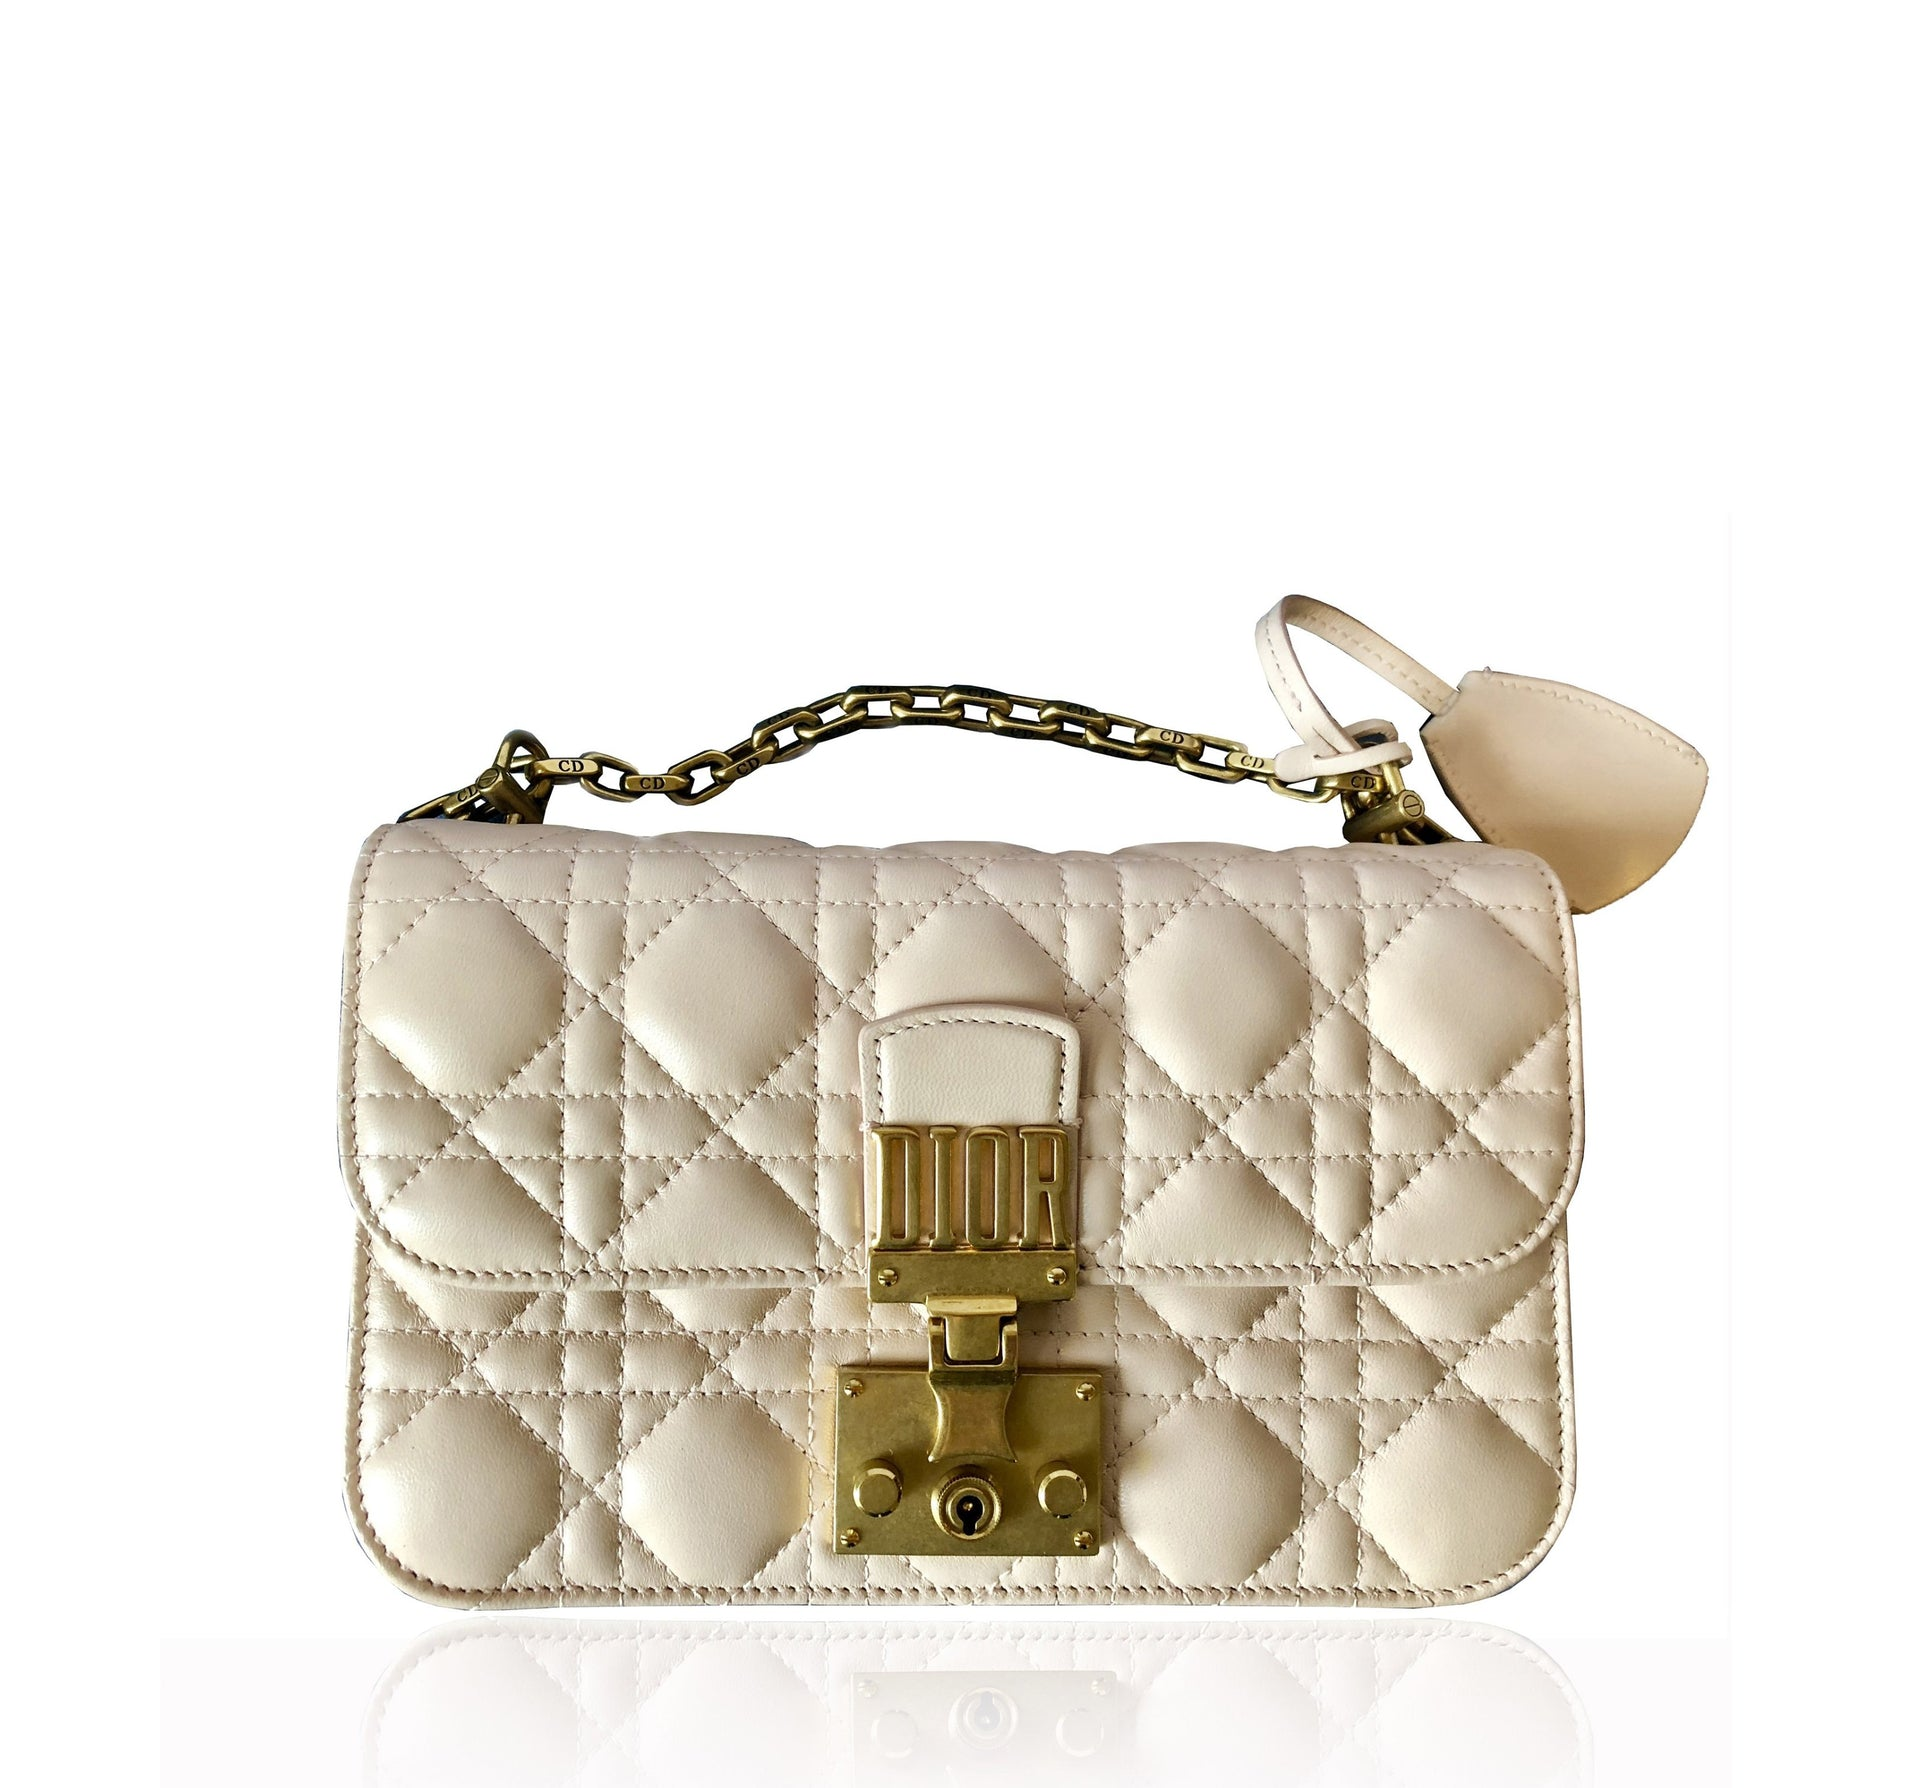 0a77570a2648 Dior Dioraddict Small Flap Bag in Powder Pink – STYLISHTOP